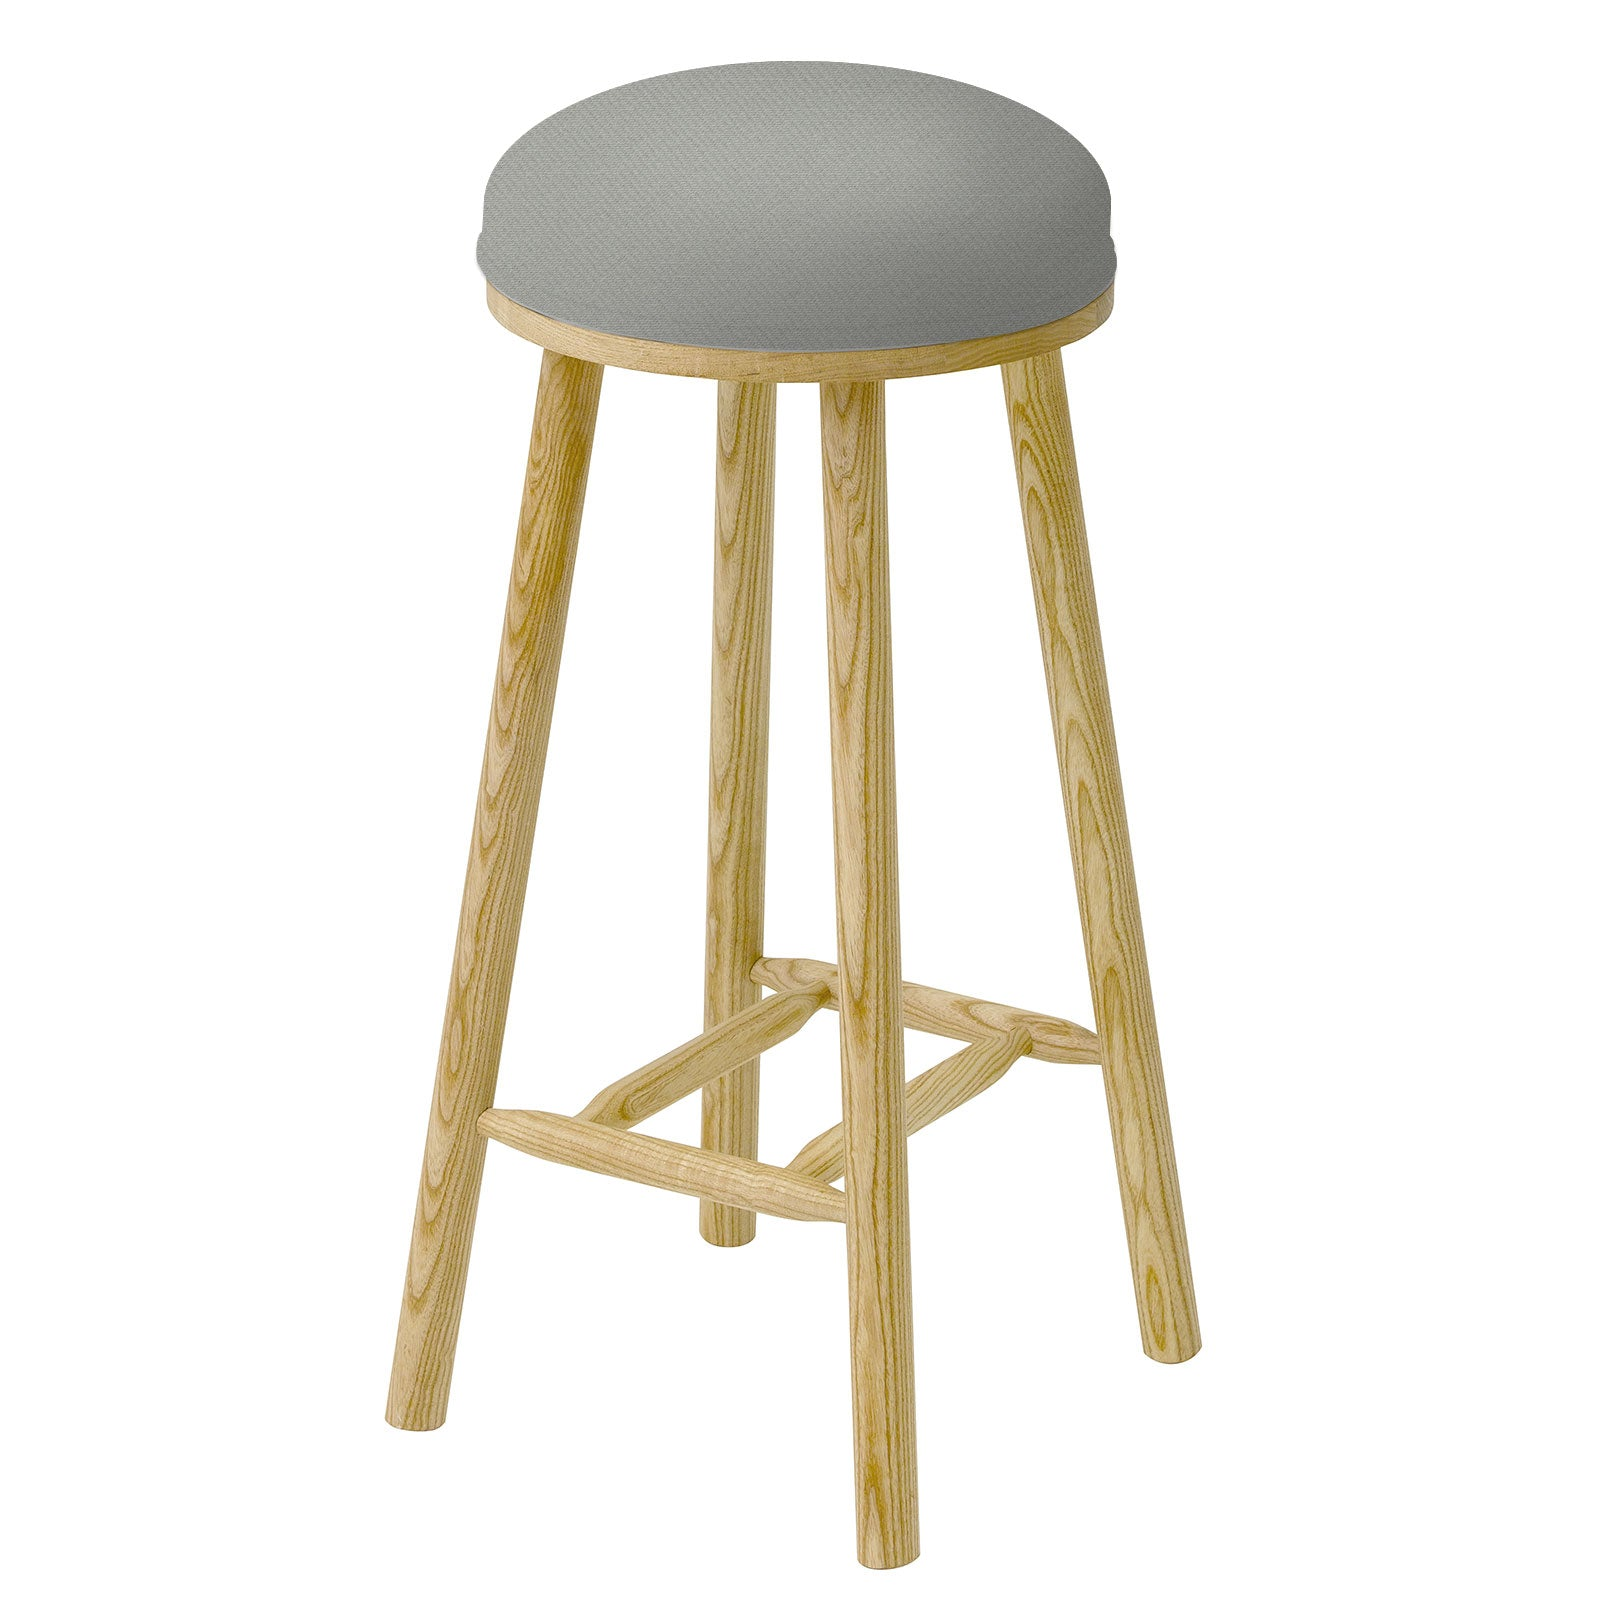 The Turner Counter Stool made-to-order in your chosen colourway.